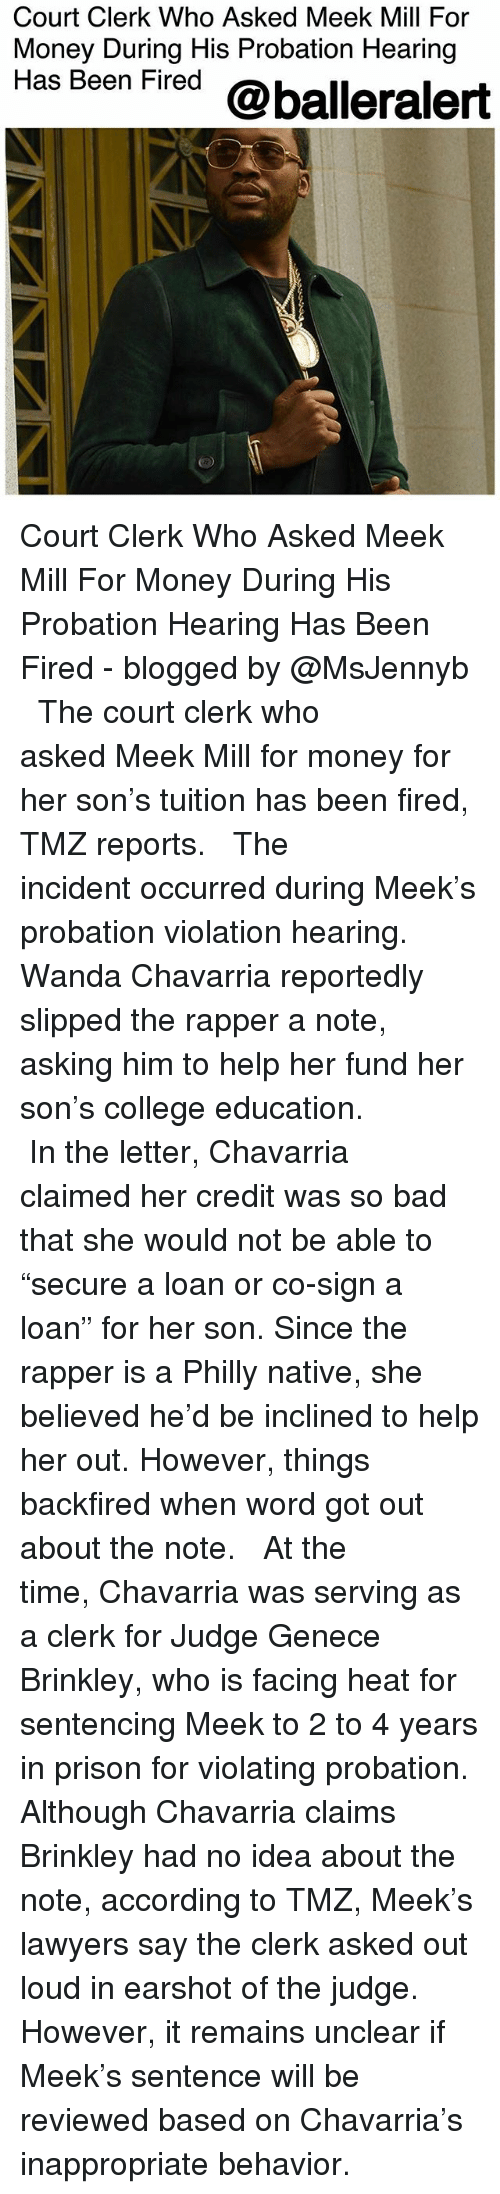 """Bad, College, and Meek Mill: Court Clerk Who Asked Meek Mill For  Money During His Probation Hearing  Has Been Fired @balleralert Court Clerk Who Asked Meek Mill For Money During His Probation Hearing Has Been Fired - blogged by @MsJennyb ⠀⠀⠀⠀⠀⠀⠀ ⠀⠀⠀⠀⠀⠀⠀ The court clerk who asked Meek Mill for money for her son's tuition has been fired, TMZ reports. ⠀⠀⠀⠀⠀⠀⠀ ⠀⠀⠀⠀⠀⠀⠀ The incident occurred during Meek's probation violation hearing. Wanda Chavarria reportedly slipped the rapper a note, asking him to help her fund her son's college education. ⠀⠀⠀⠀⠀⠀⠀ ⠀⠀⠀⠀⠀⠀⠀ In the letter, Chavarria claimed her credit was so bad that she would not be able to """"secure a loan or co-sign a loan"""" for her son. Since the rapper is a Philly native, she believed he'd be inclined to help her out. However, things backfired when word got out about the note. ⠀⠀⠀⠀⠀⠀⠀ ⠀⠀⠀⠀⠀⠀⠀ At the time, Chavarria was serving as a clerk for Judge Genece Brinkley, who is facing heat for sentencing Meek to 2 to 4 years in prison for violating probation. Although Chavarria claims Brinkley had no idea about the note, according to TMZ, Meek's lawyers say the clerk asked out loud in earshot of the judge. However, it remains unclear if Meek's sentence will be reviewed based on Chavarria's inappropriate behavior."""